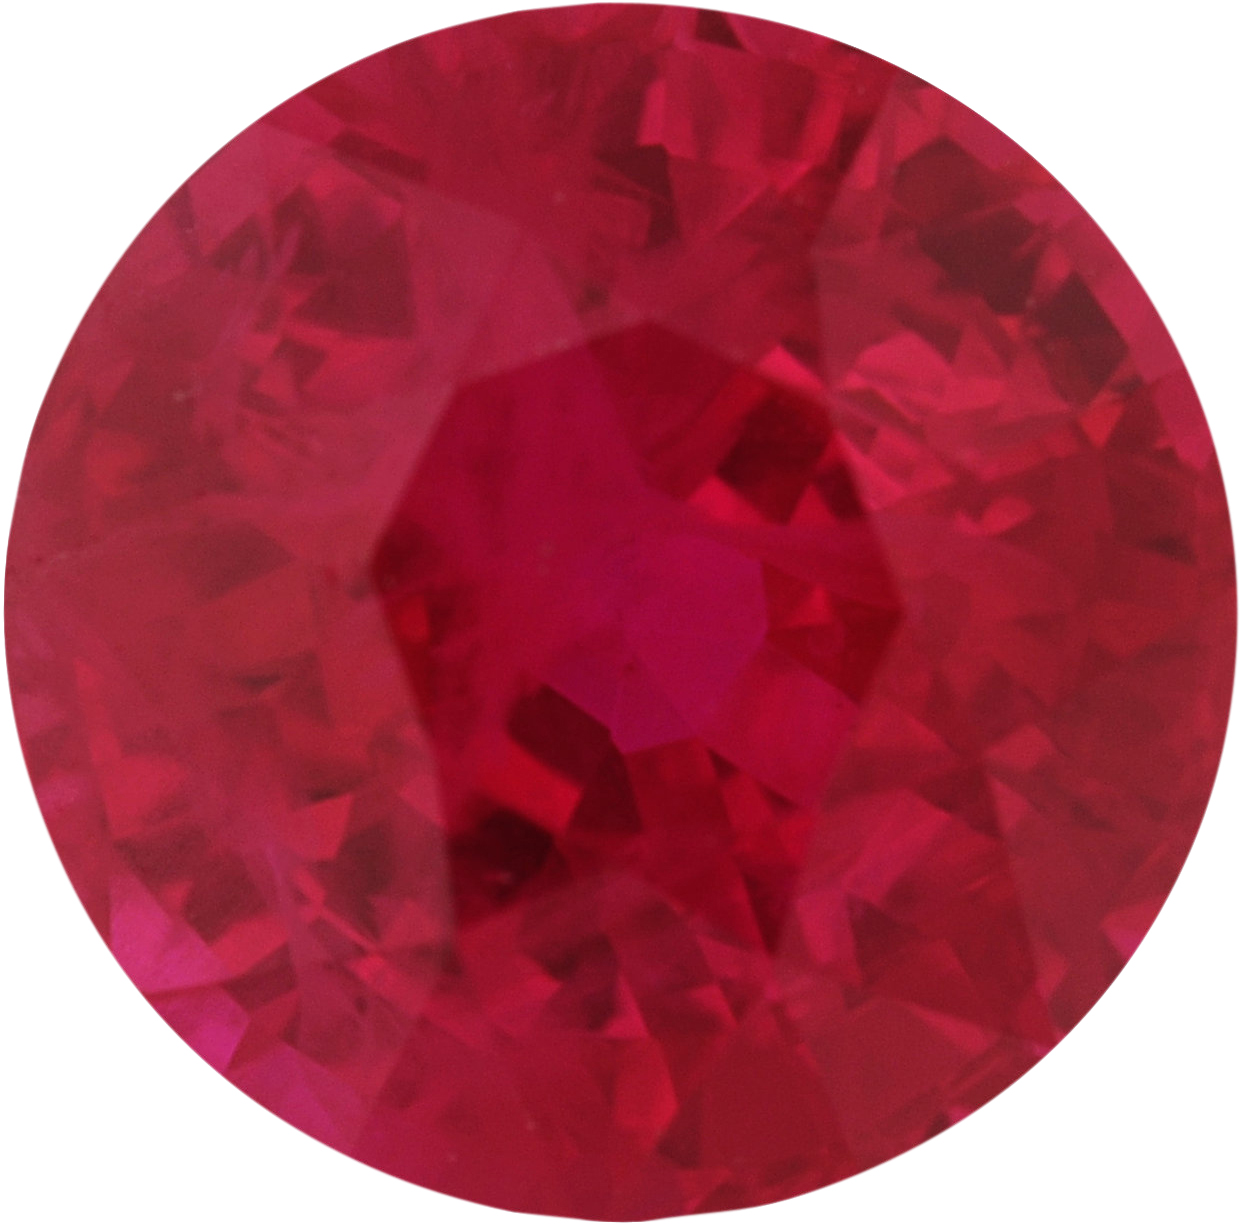 6.44 mm, Ruby Loose Gemstone in Round Cut, 1.56 carats